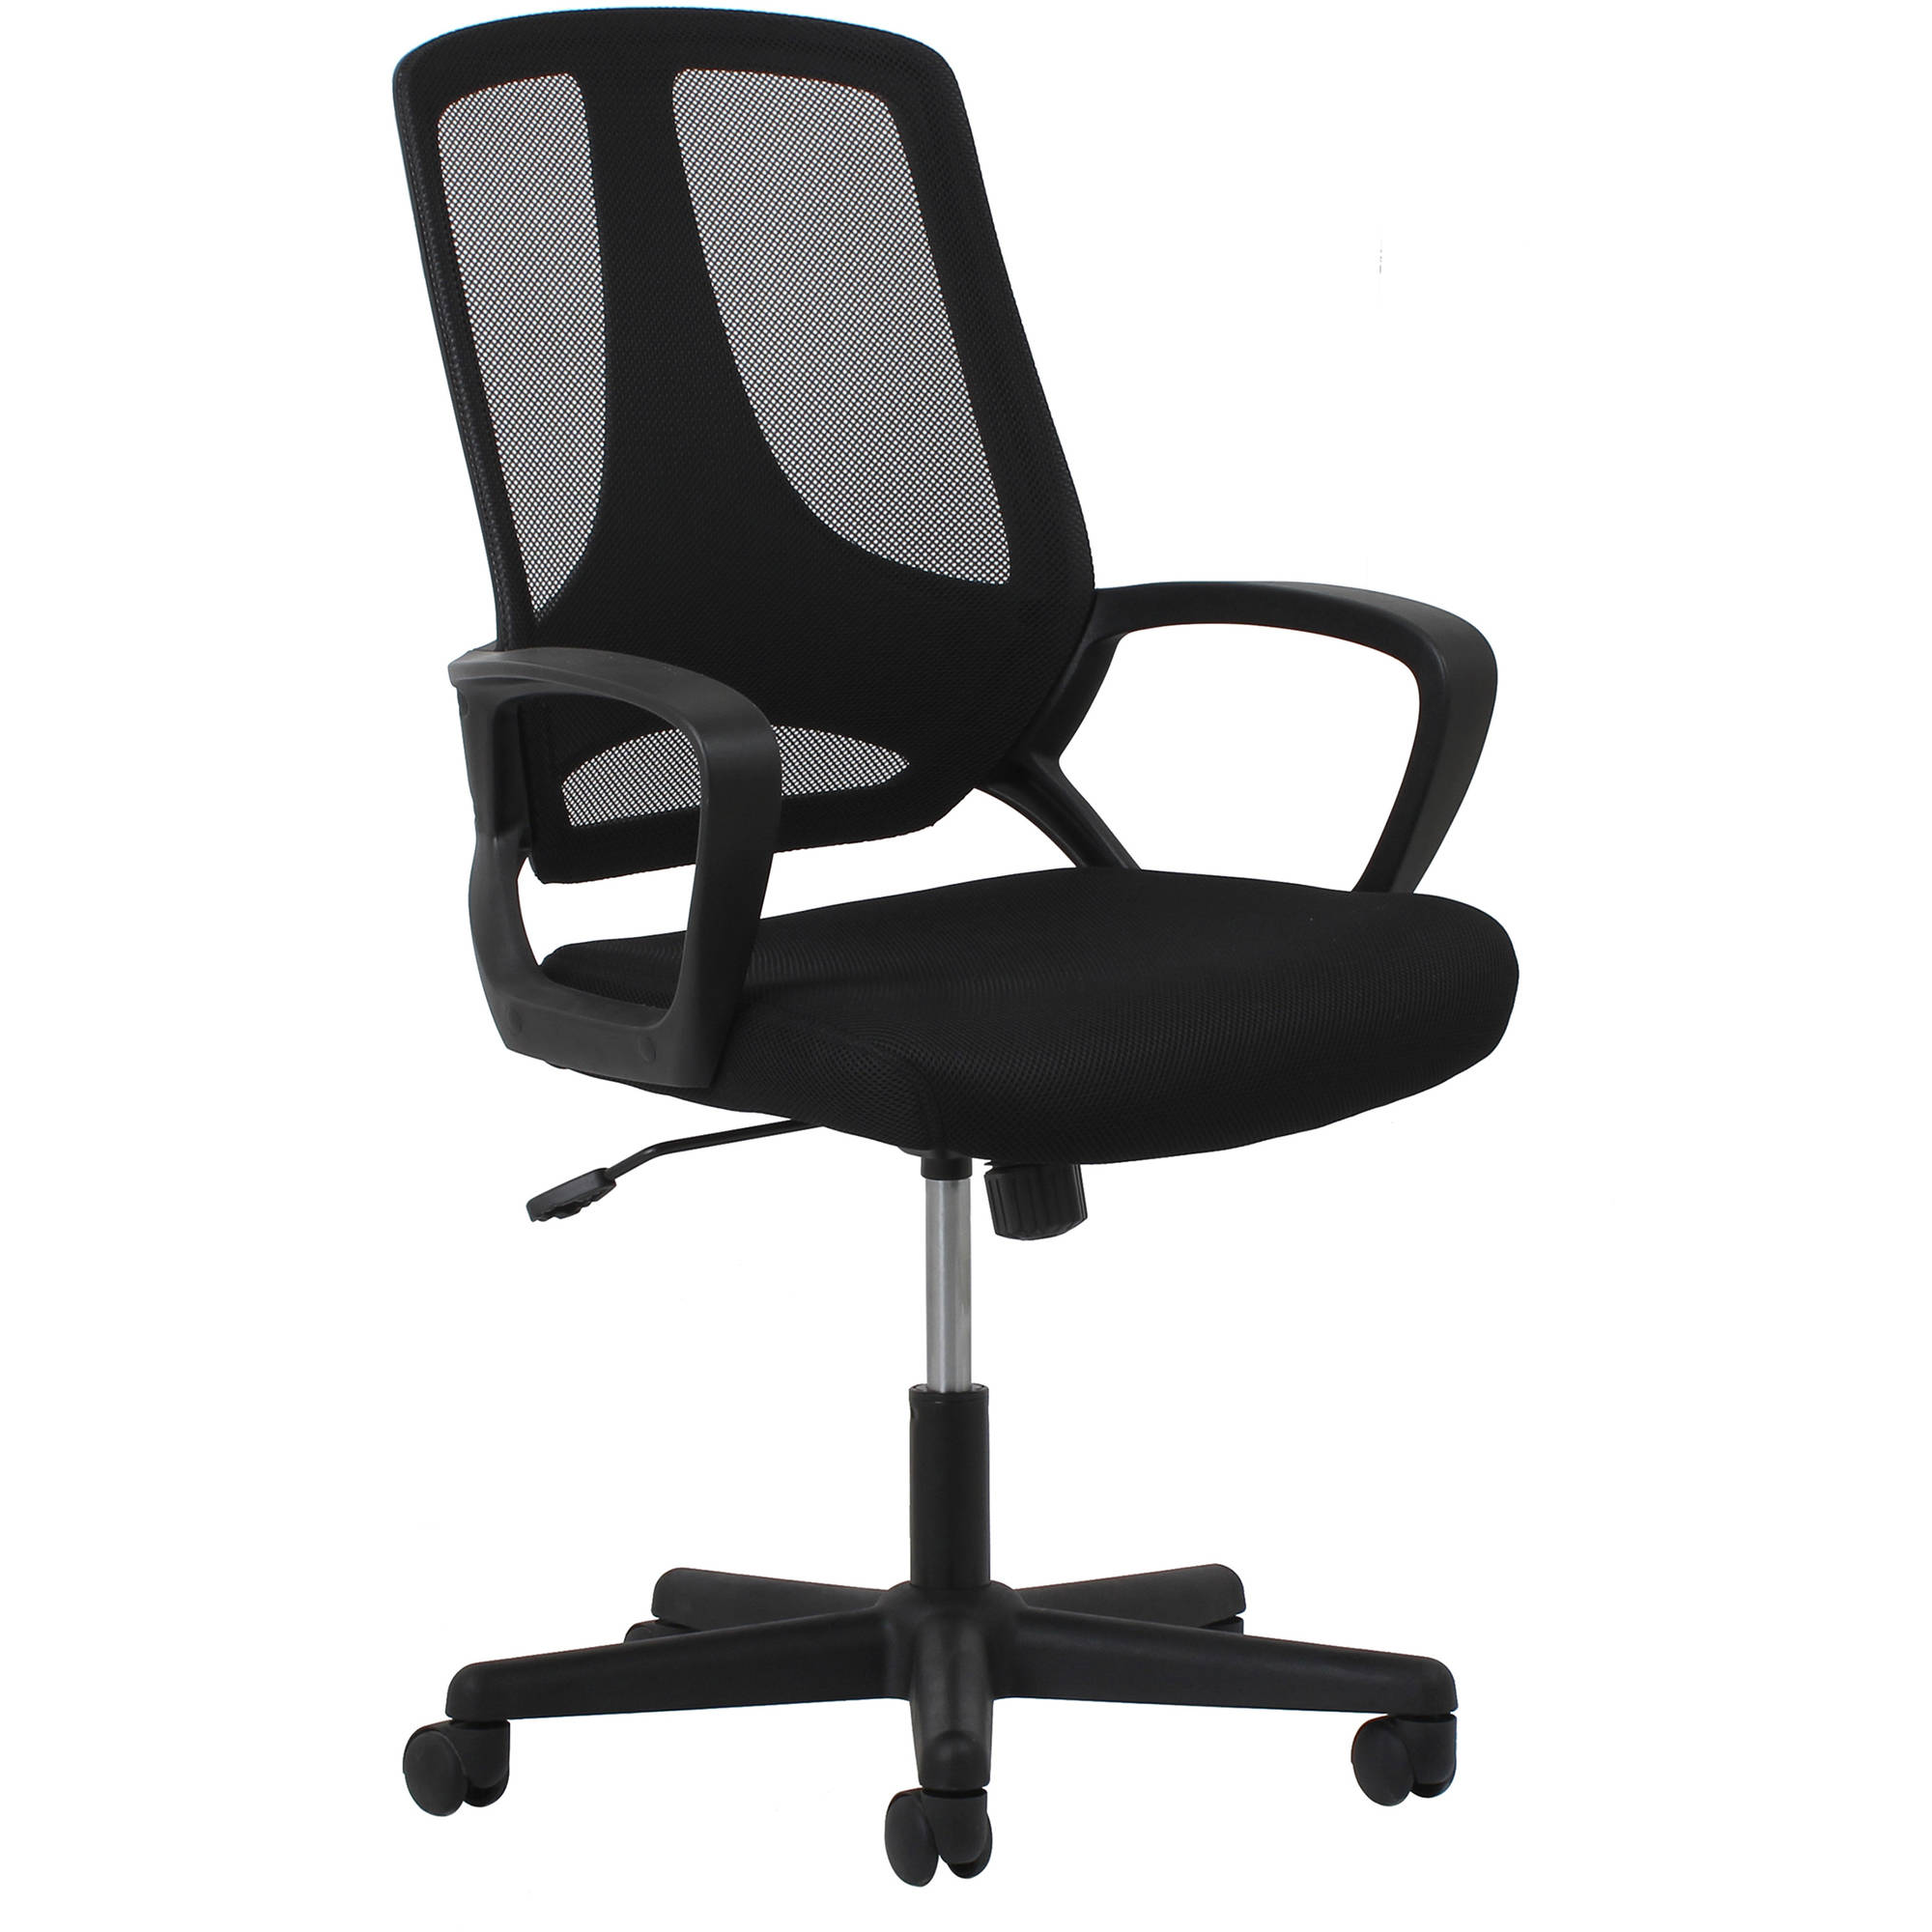 Essentials by OFM Swivel Mesh Task Chair with Arms, Black